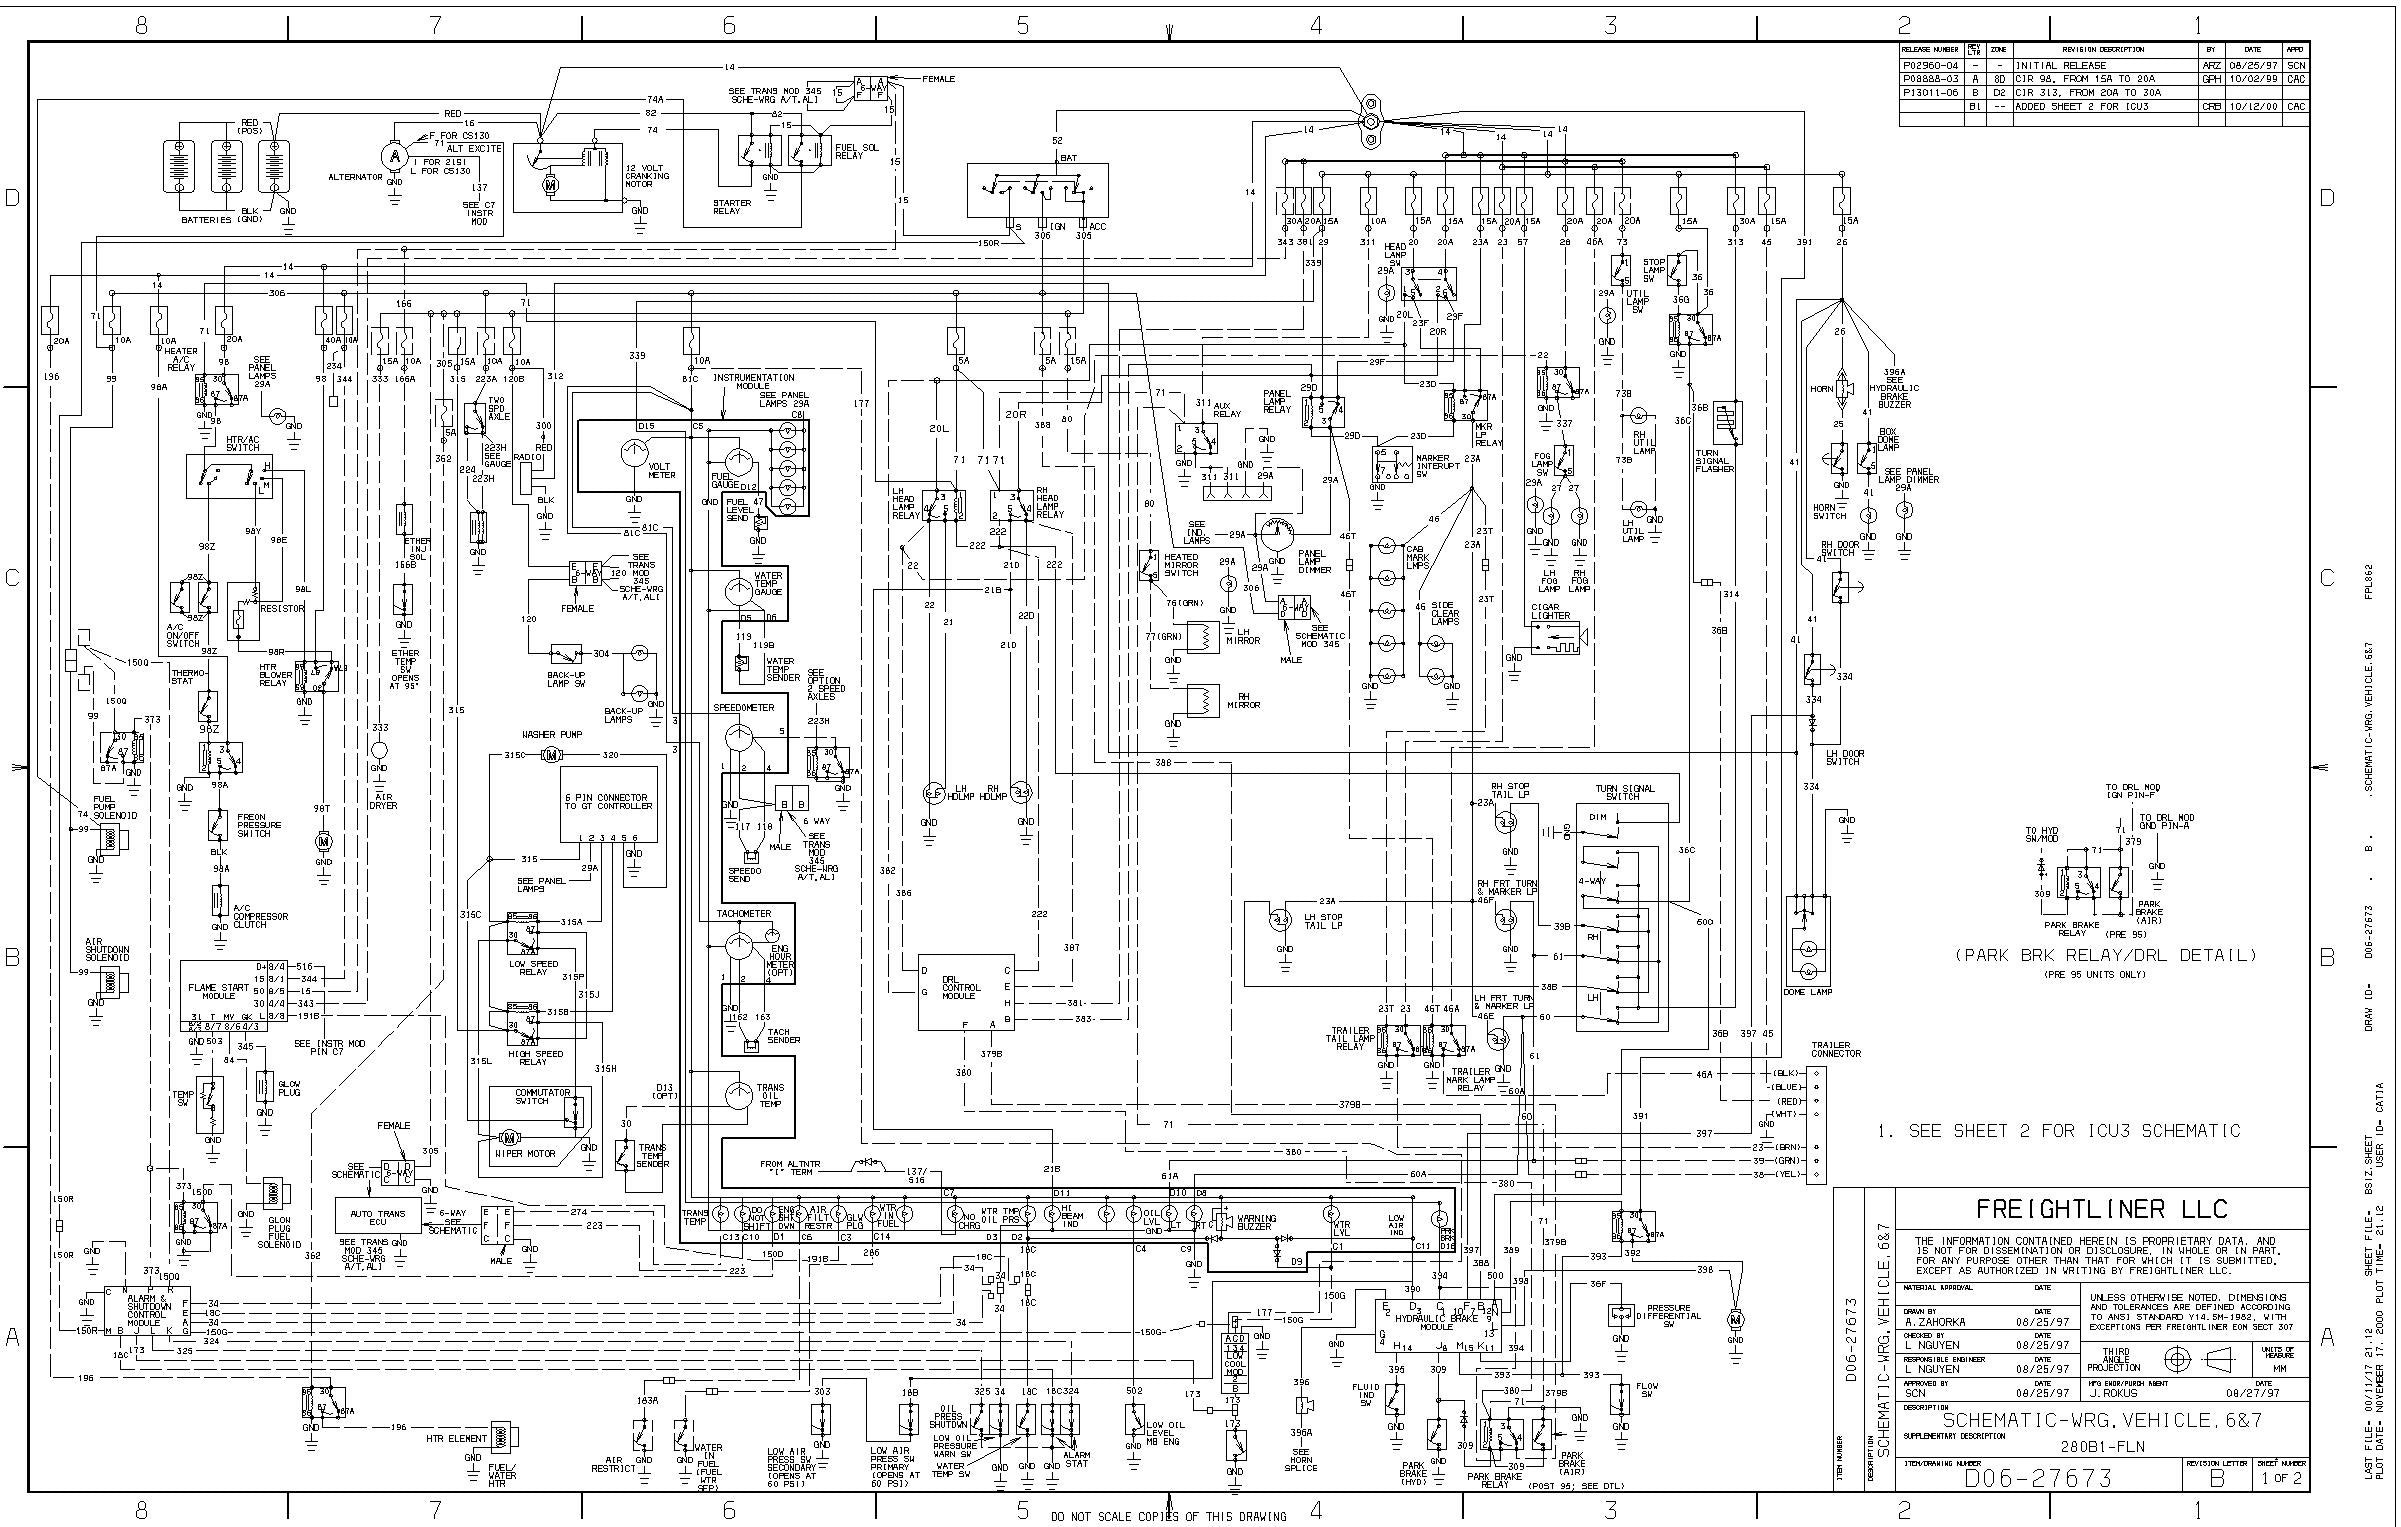 Freightliner M Wiring Diagram Access Freightliner Wiring Diagrams Gallery Diagram Also O on 2007 freightliner columbia wiring diagrams